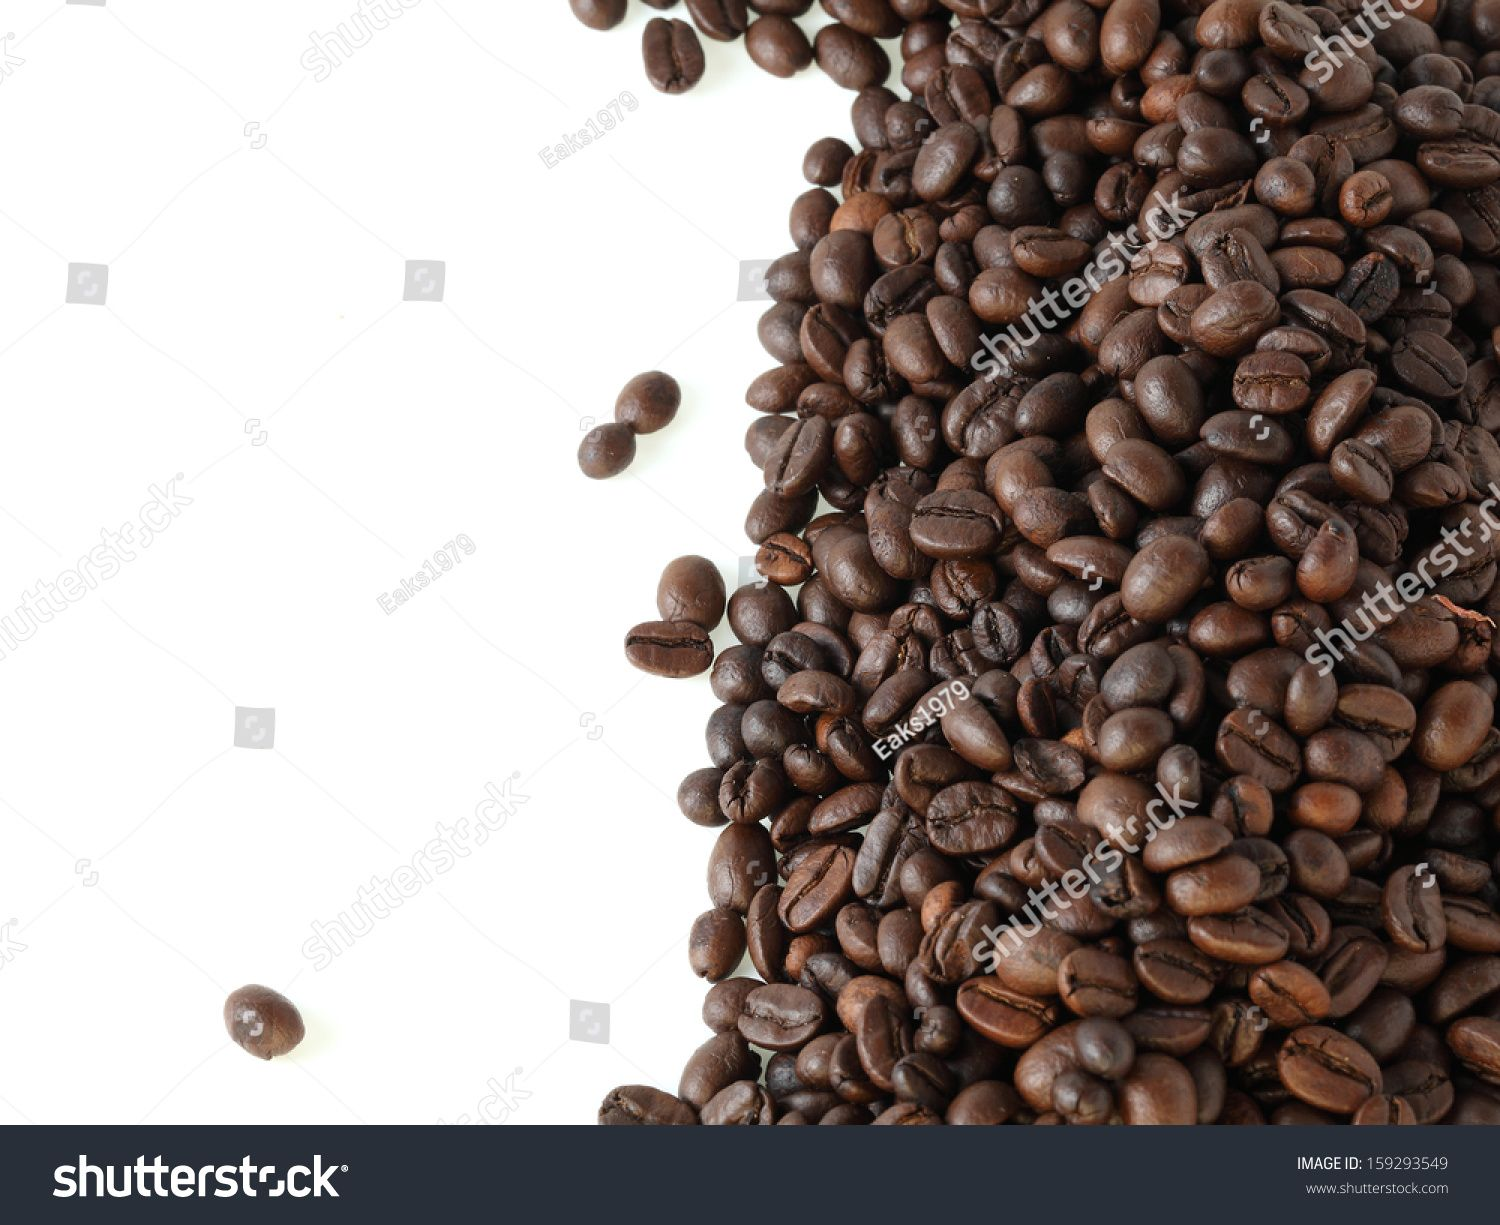 Coffee Beans On White Background Ad Affiliate Beans Coffee Background White In 2020 Coffee Beans White Background Beans